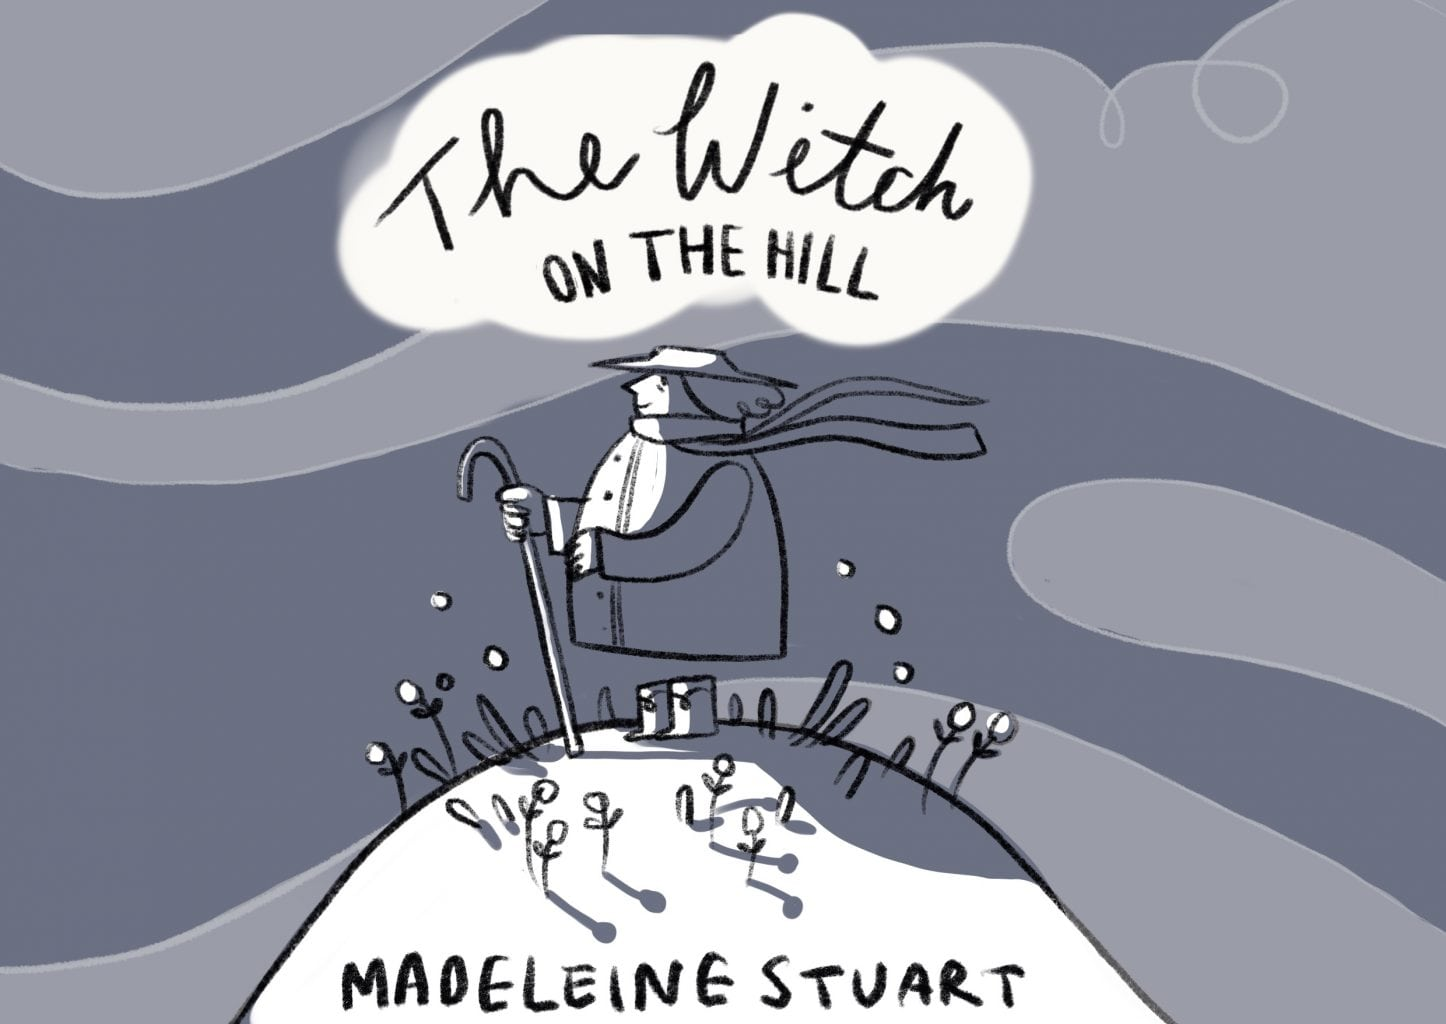 <p>'The Witch on the Hill' by Madeline Stuart</p>